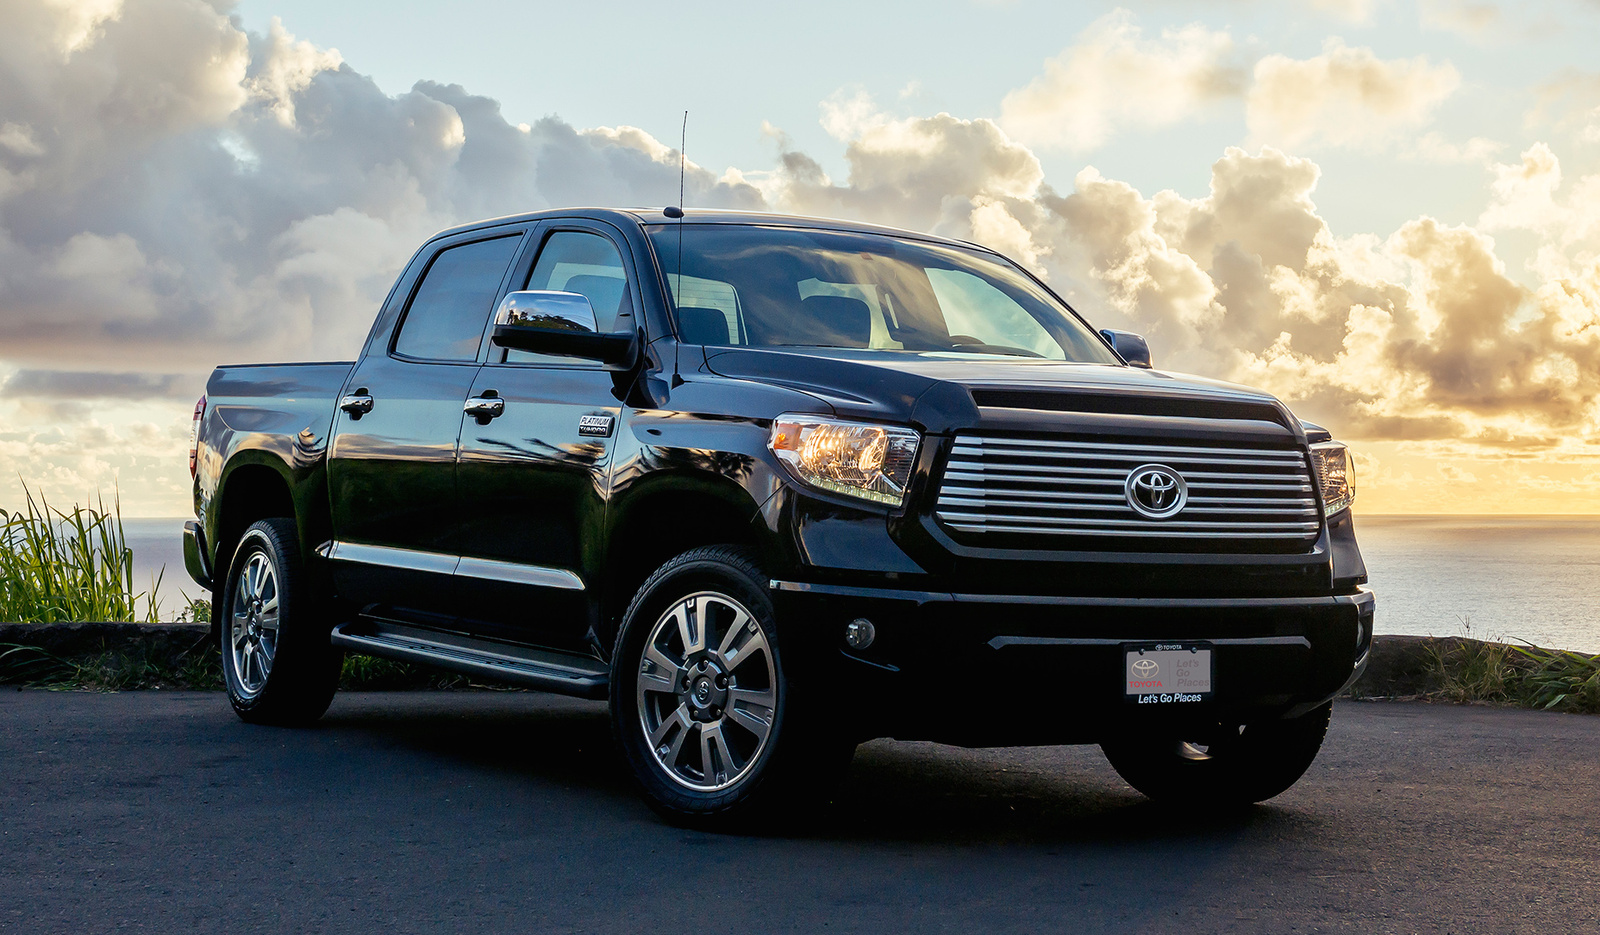 2016 Toyota Tundra for Sale in your area - CarGurus